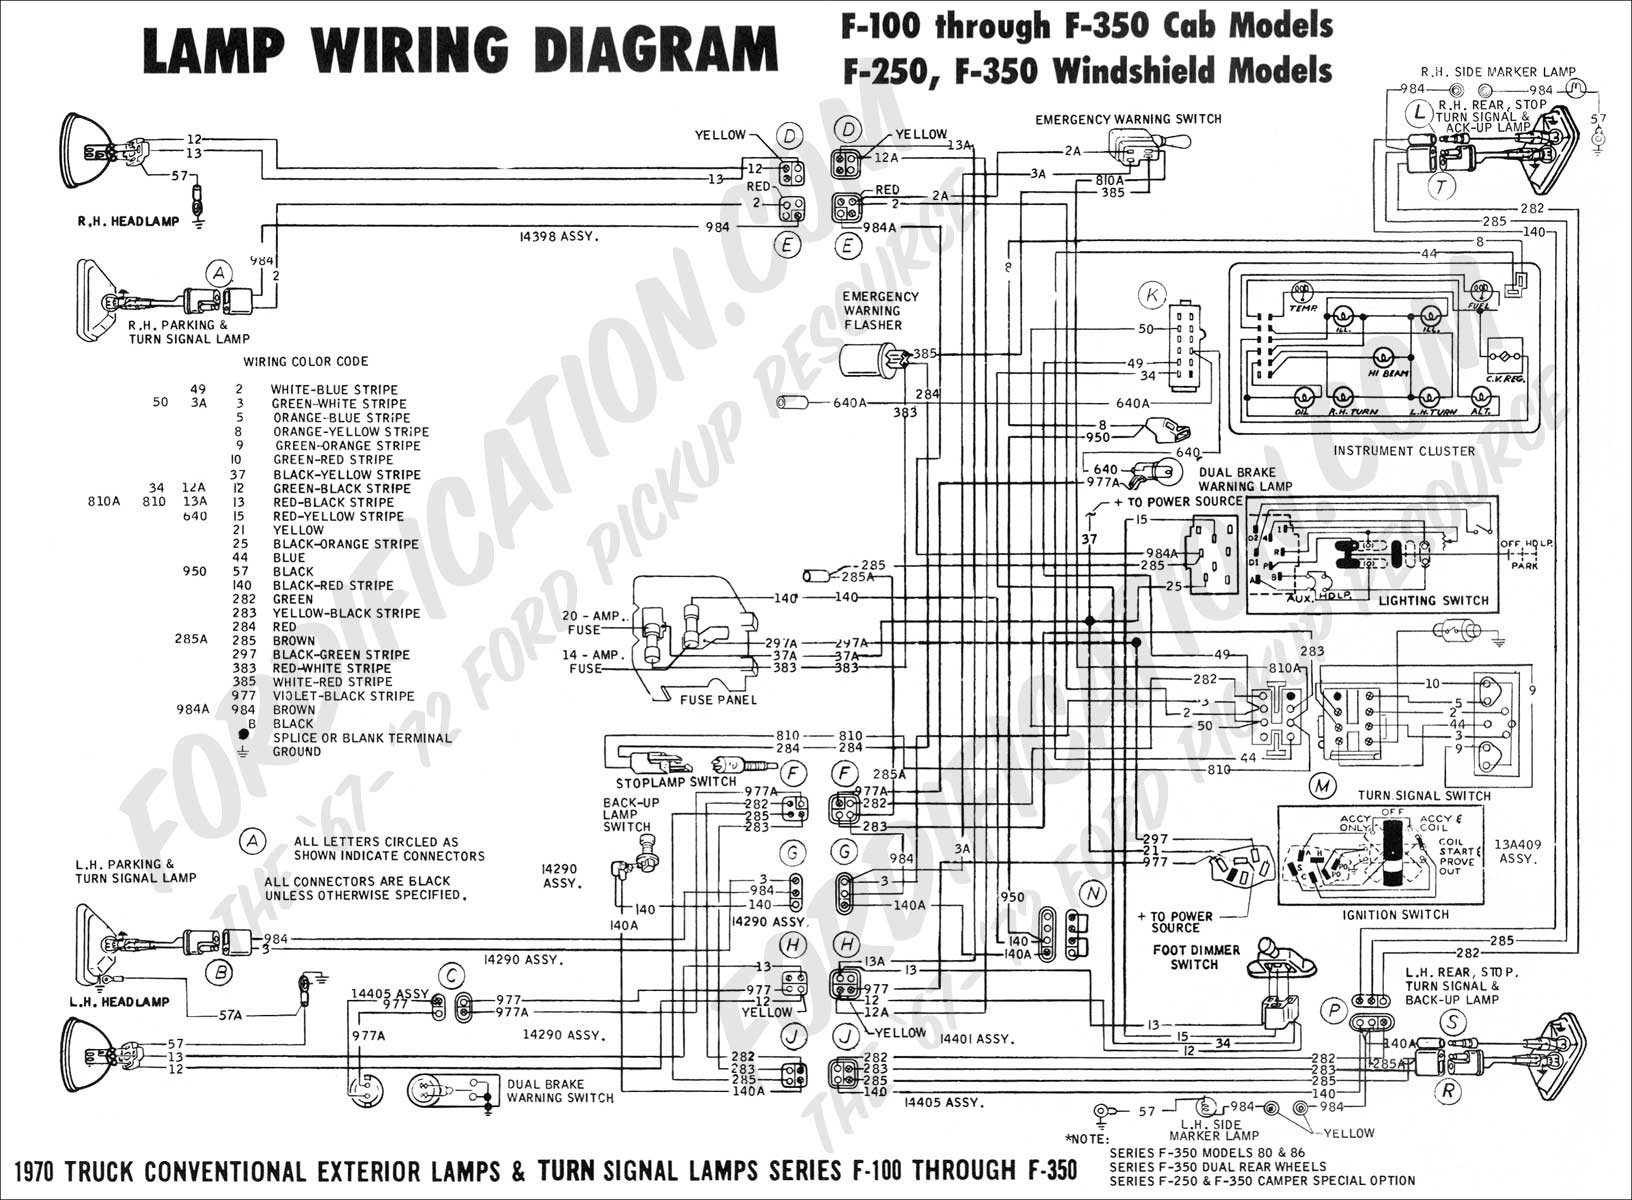 Toyota Ke30 Wiring Diagram | Wiring Diagram on